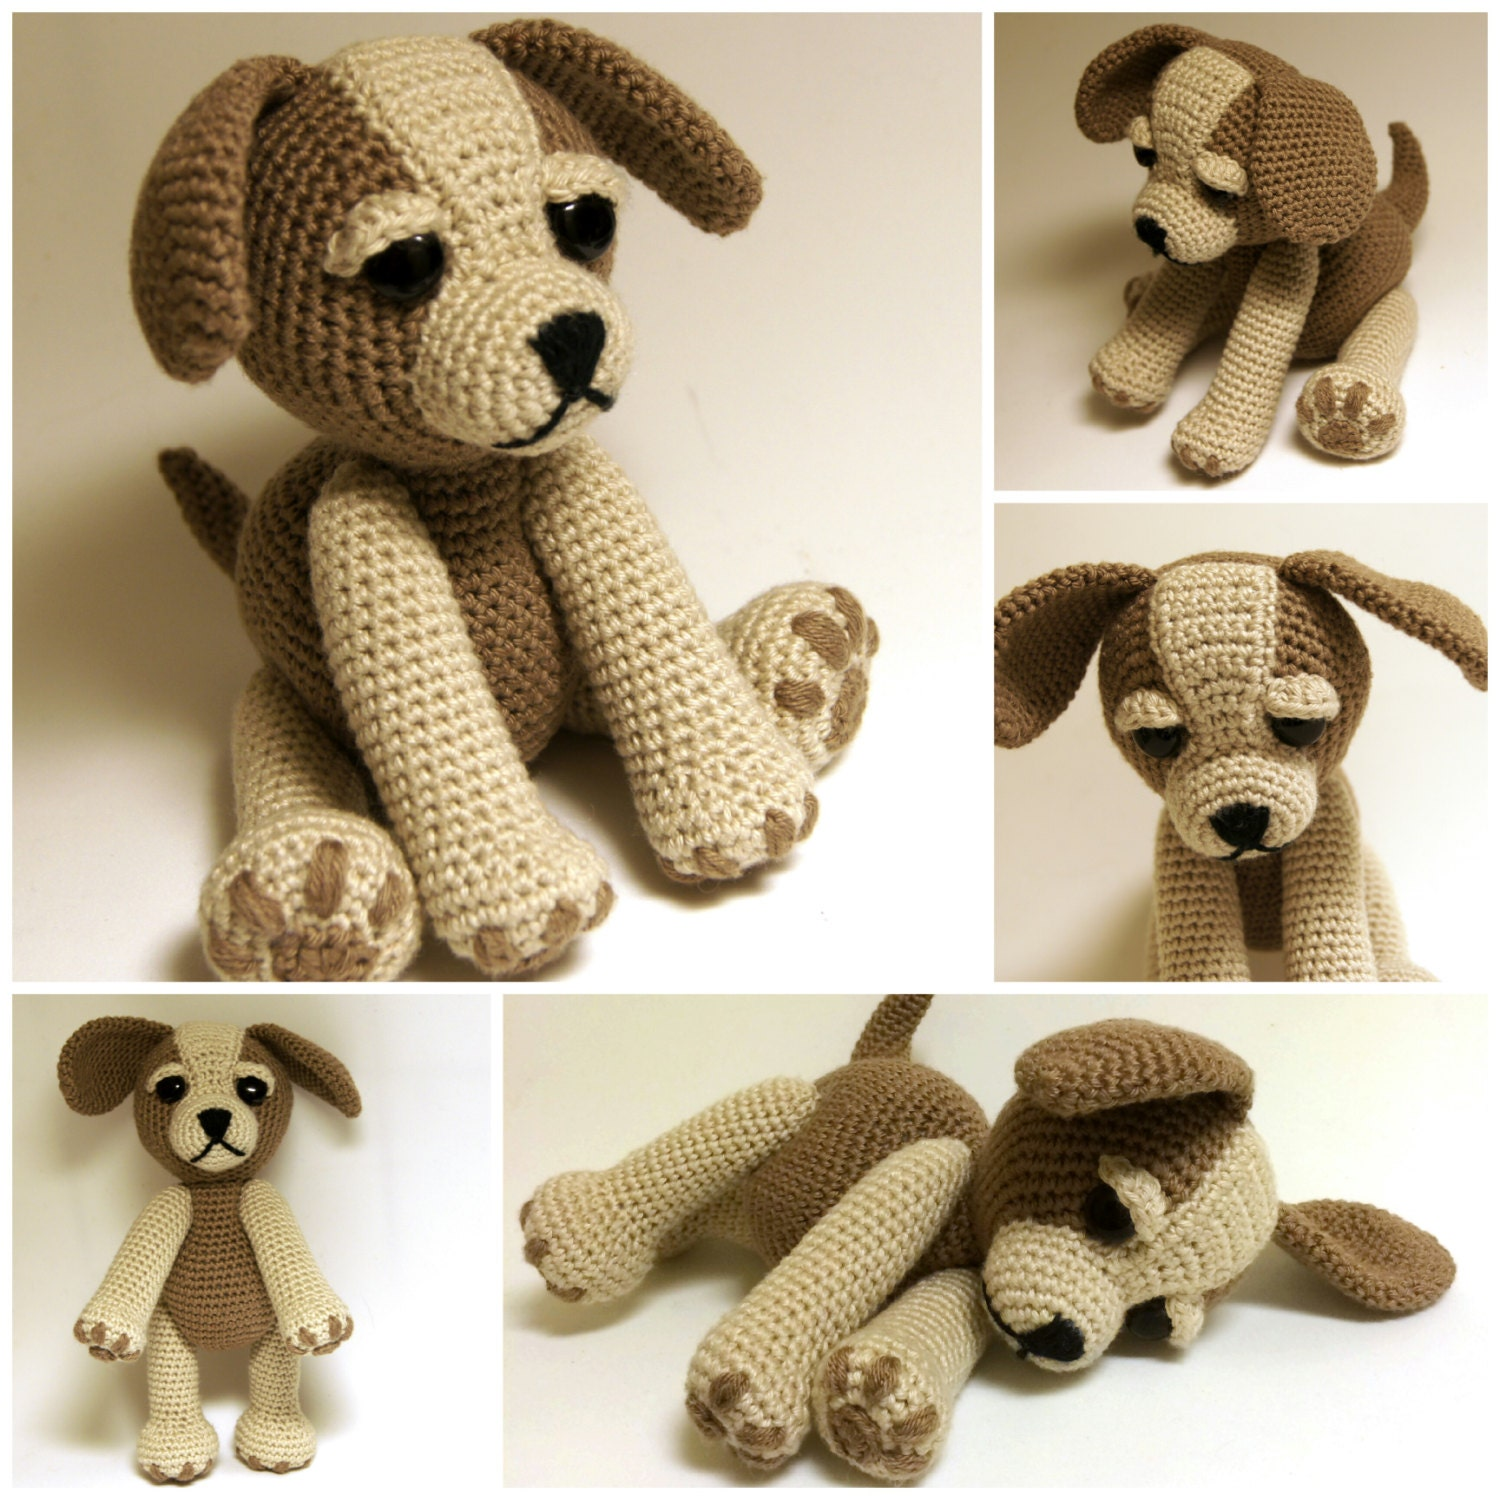 Crochet Pattern - Sammy the Puppy Dog, Crochet dog, crochet Animal ...